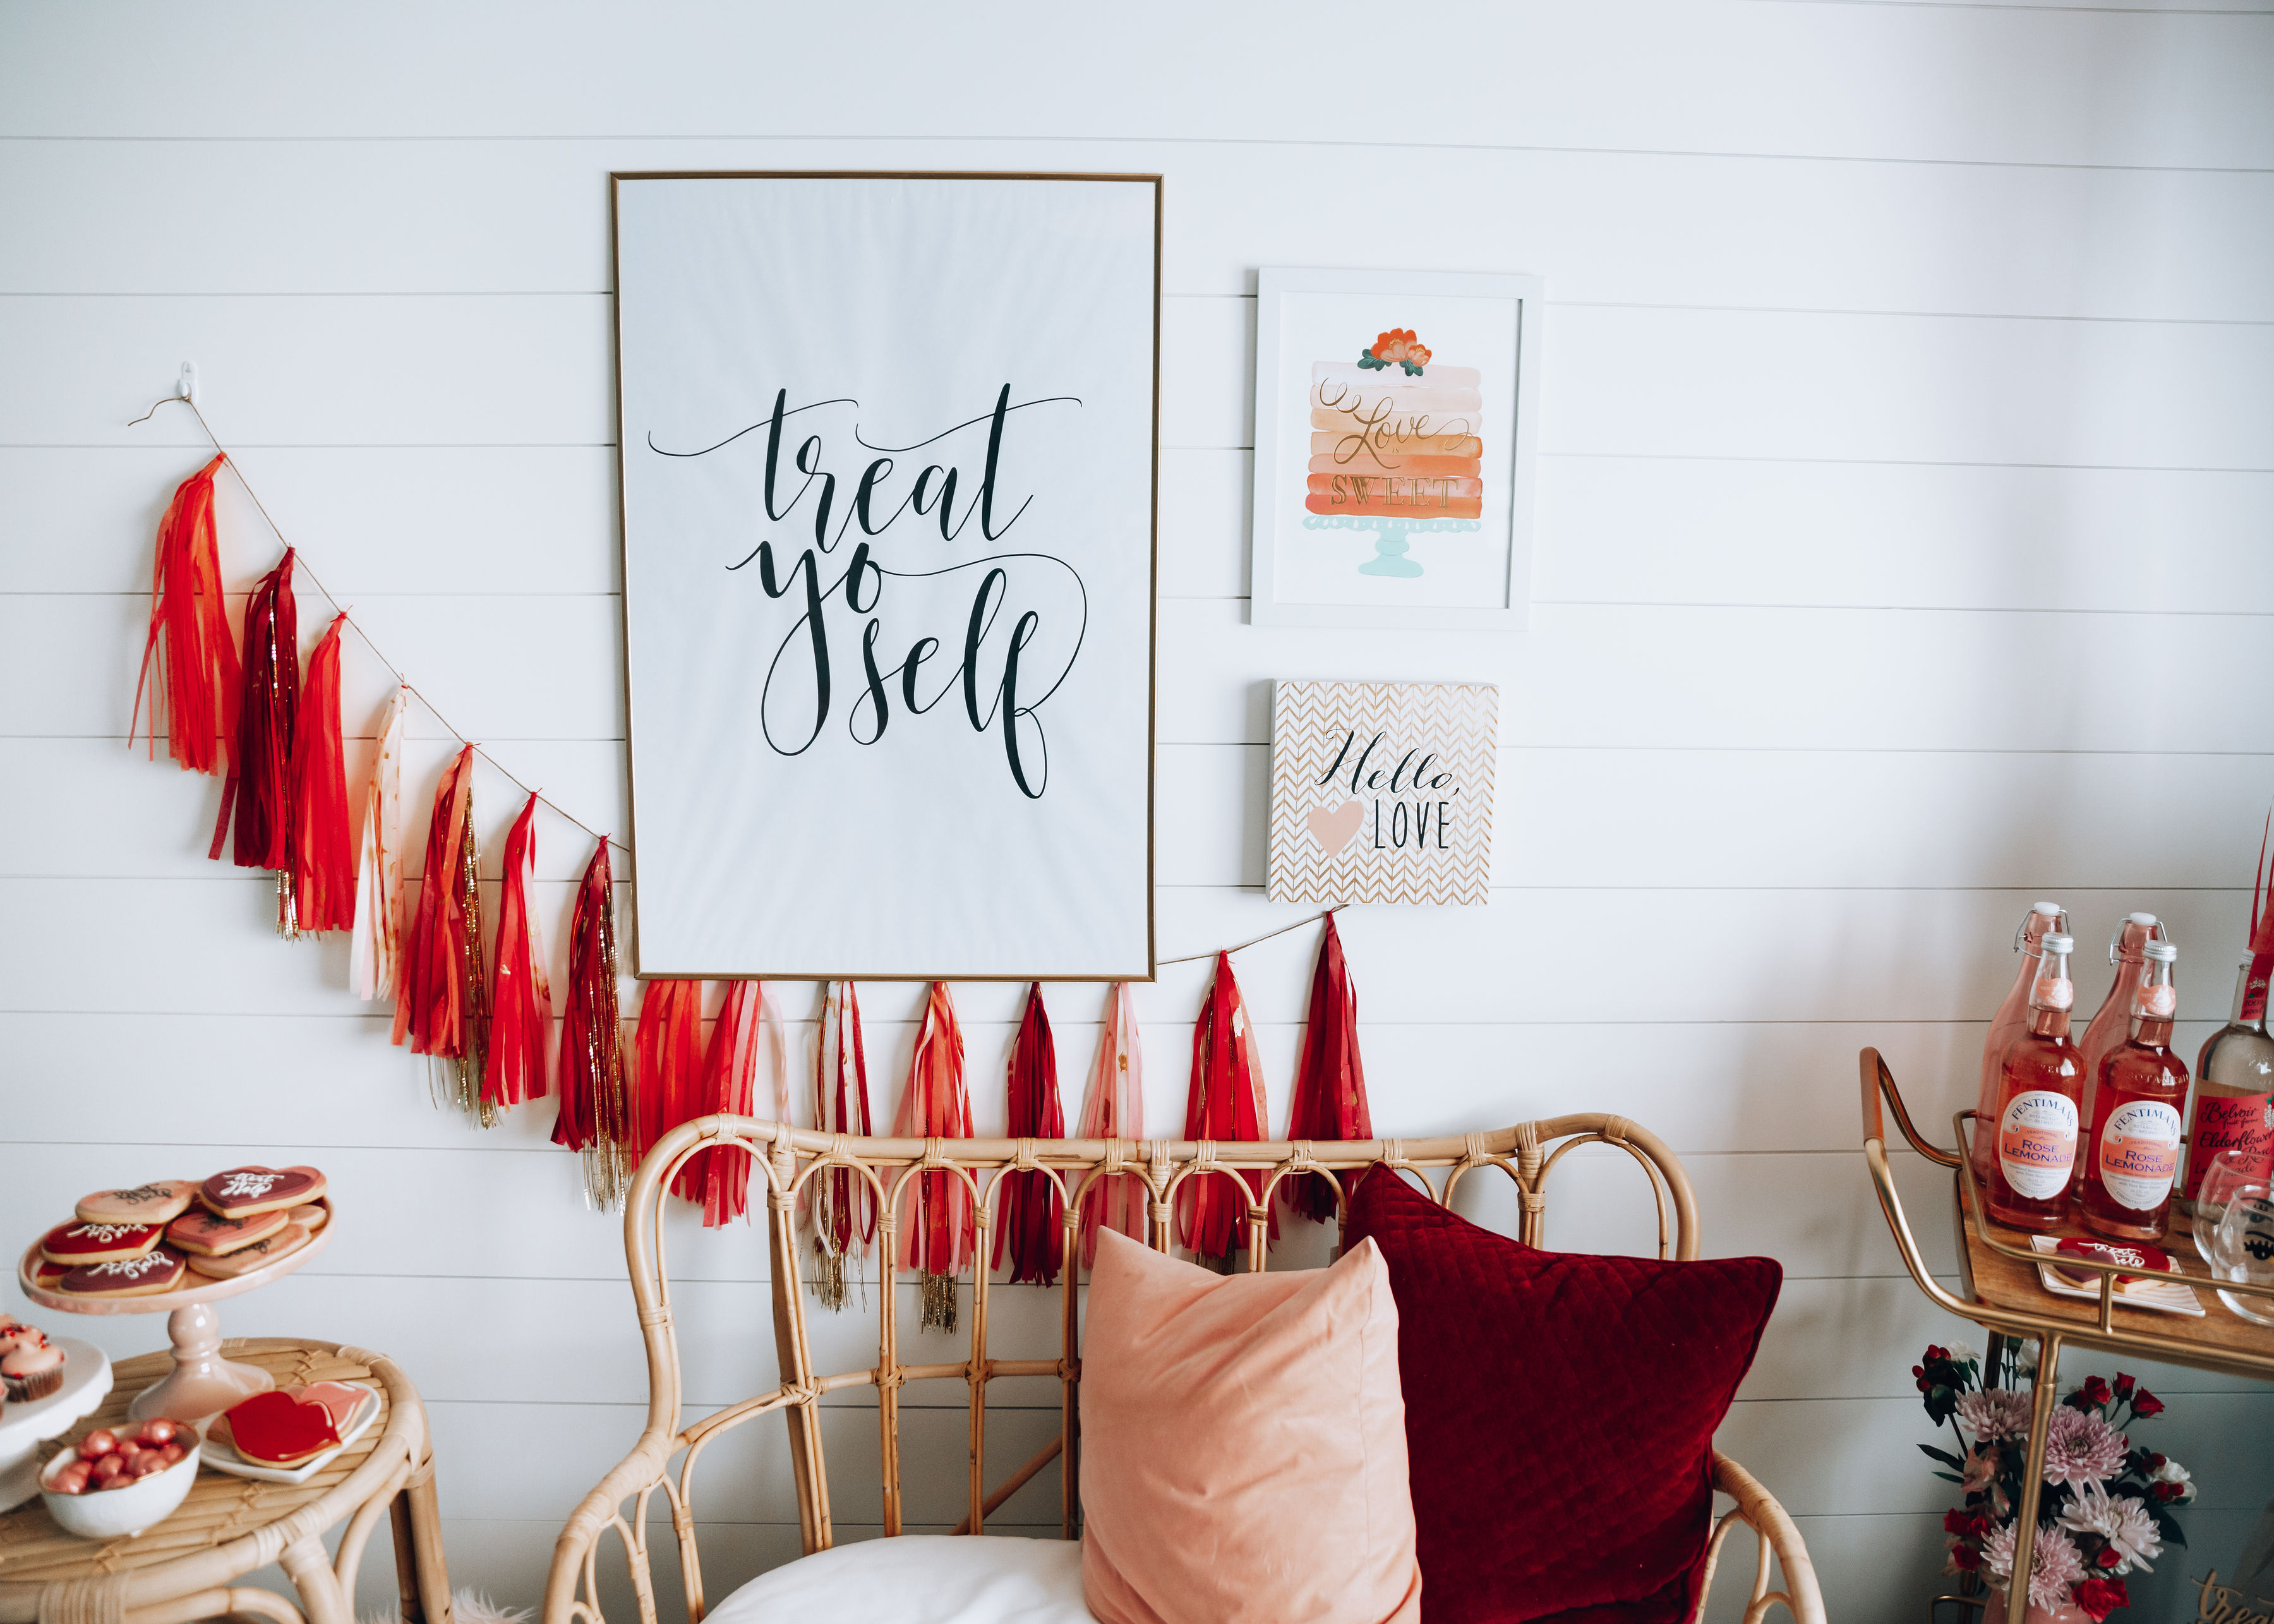 5 Ways to Treat YourSelf This Valentine's Day featured by top life and style blog, For the Love: image of Valentines Day home decor